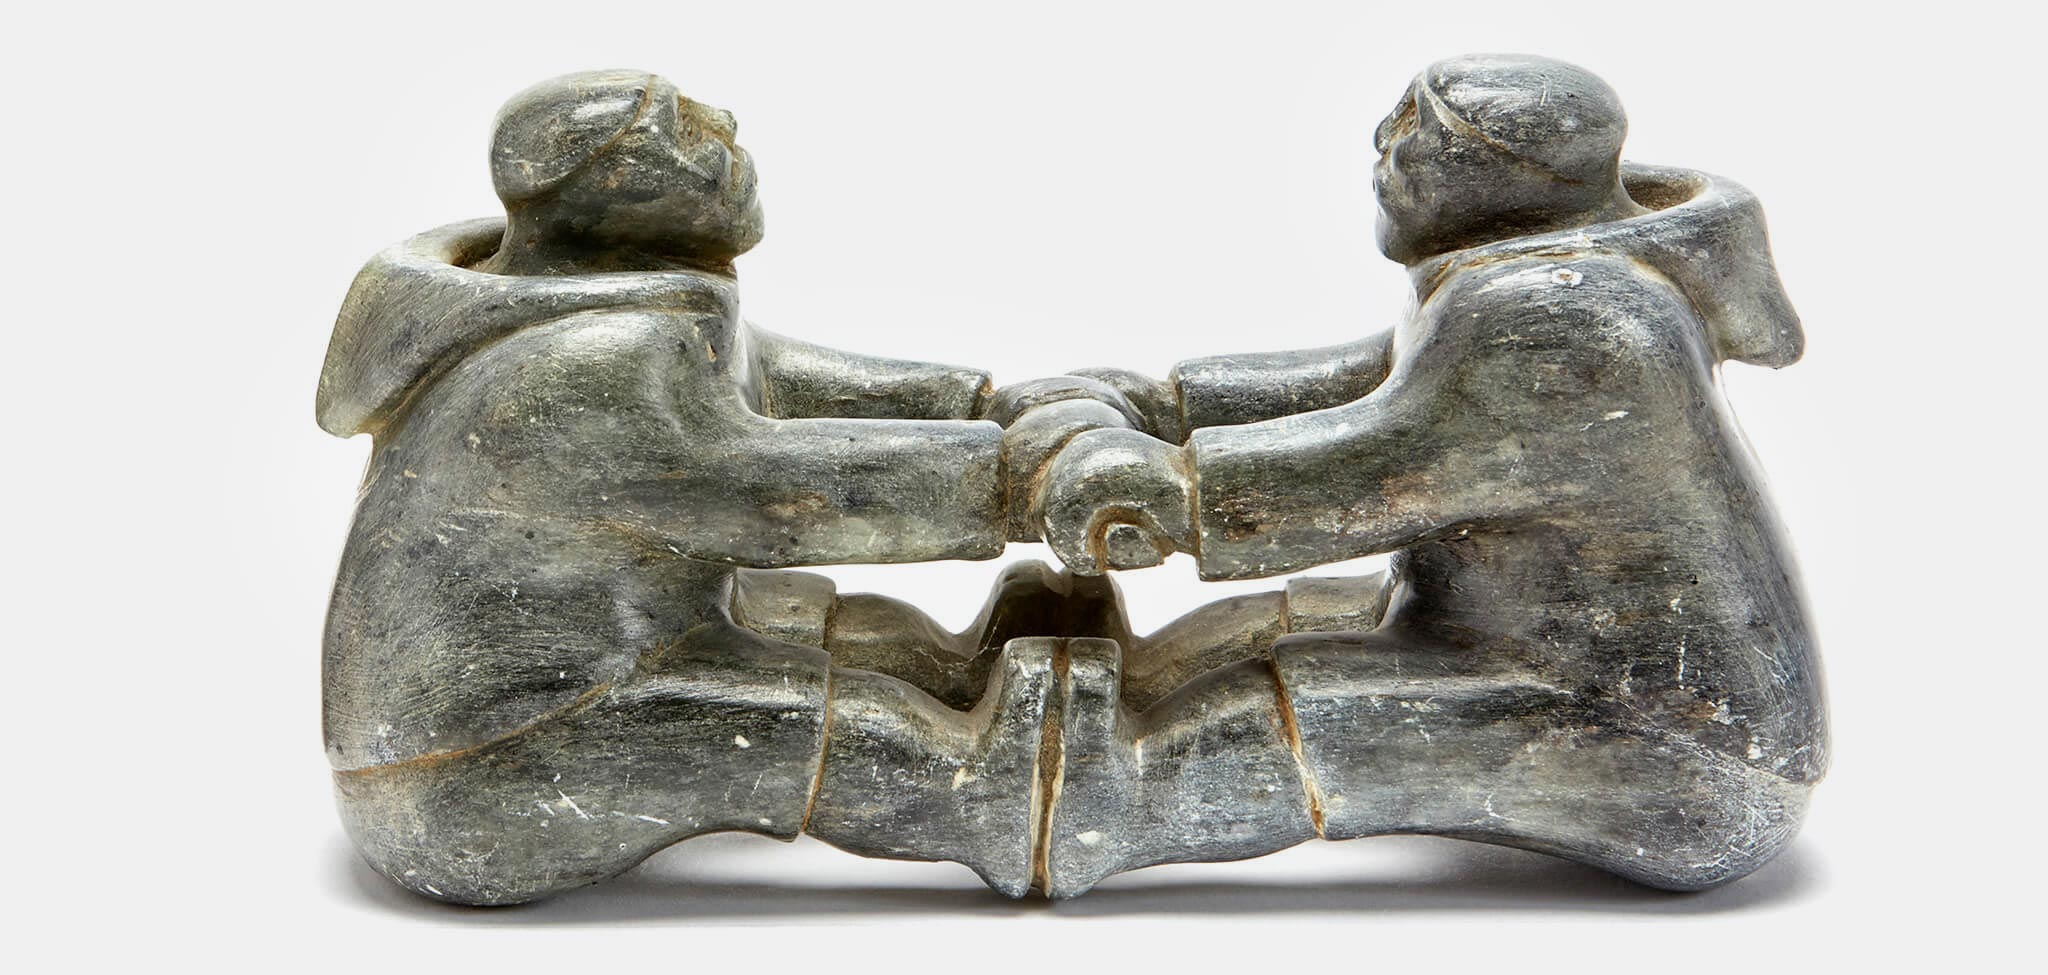 Art Gallery of Hamilton - Carving Home: The Chedoke Collection of Inuit Art